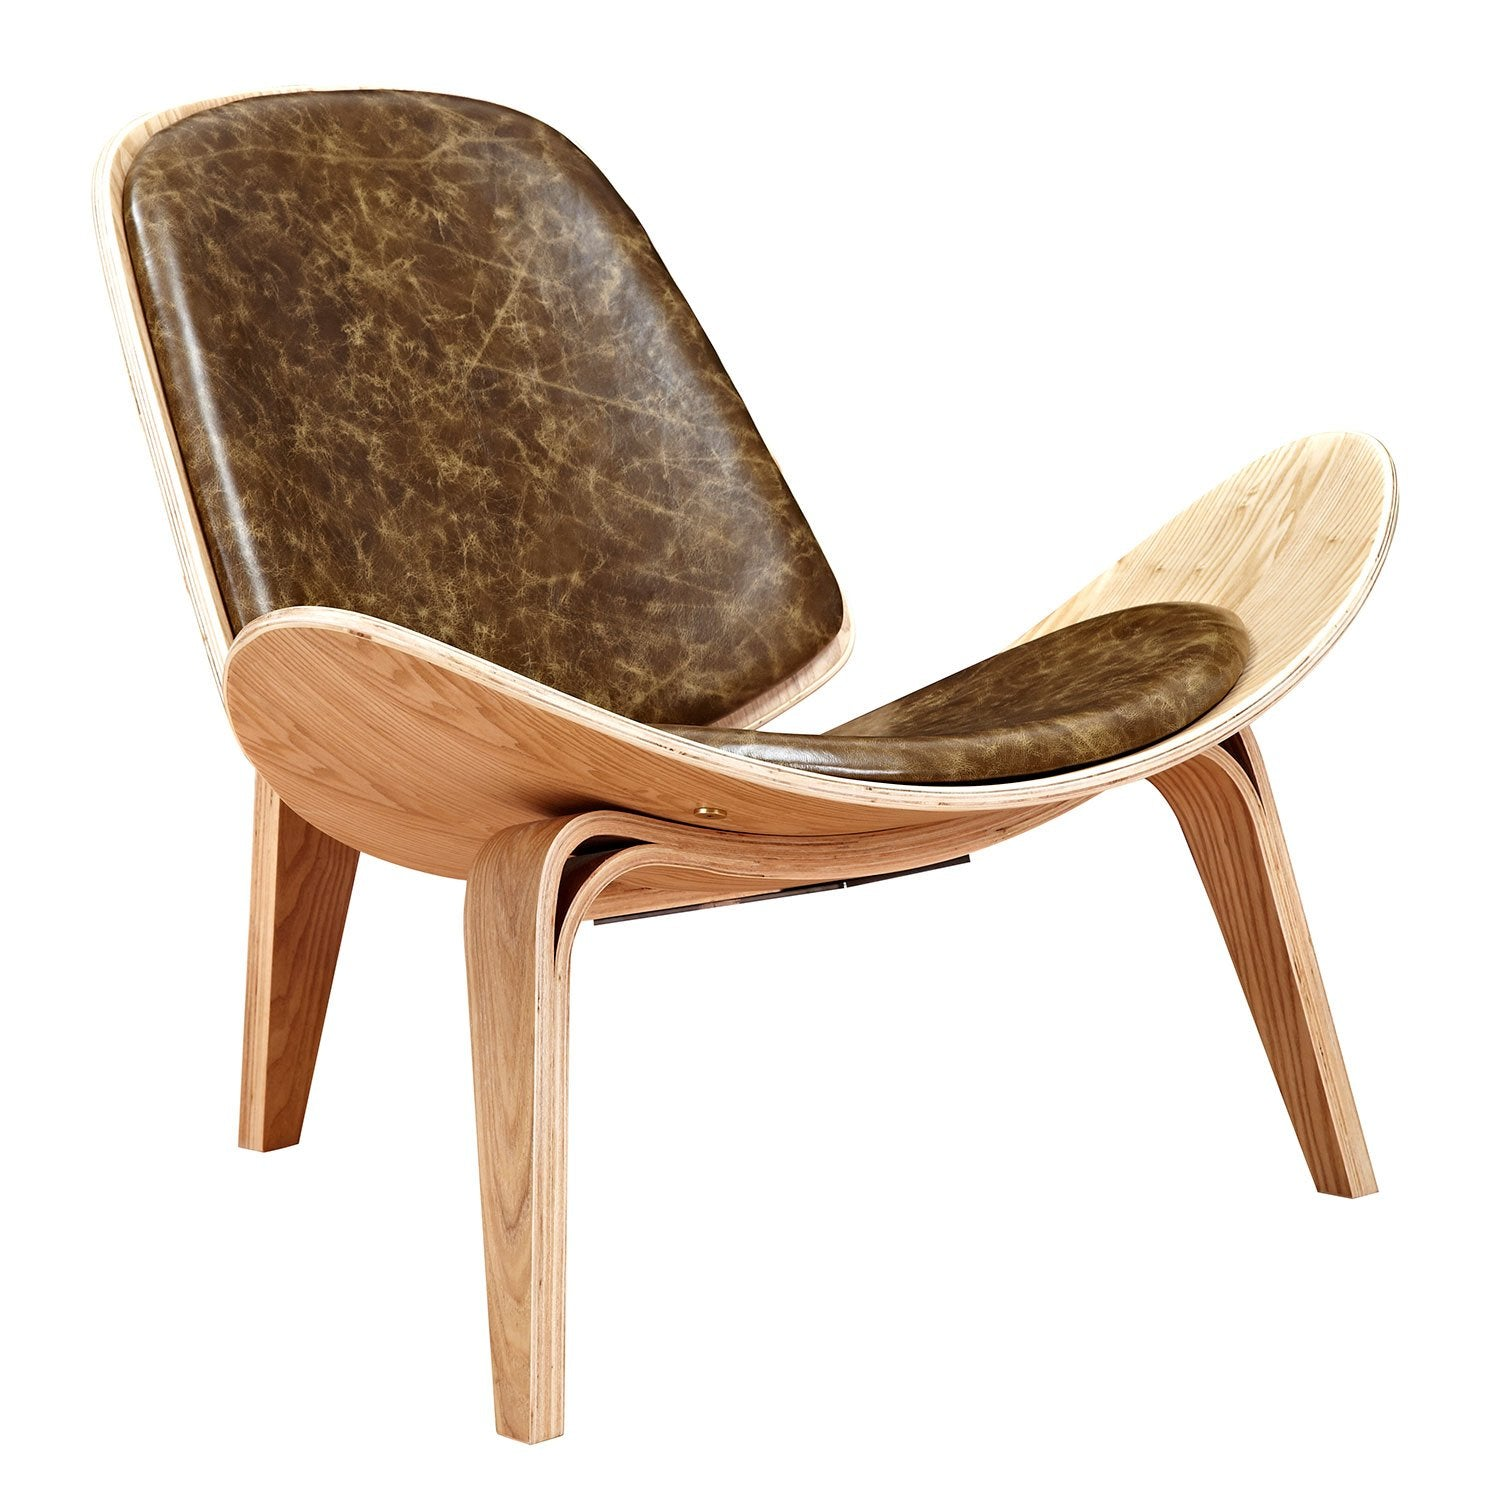 shell chair with palermo olive top grain leather and natural finish wo